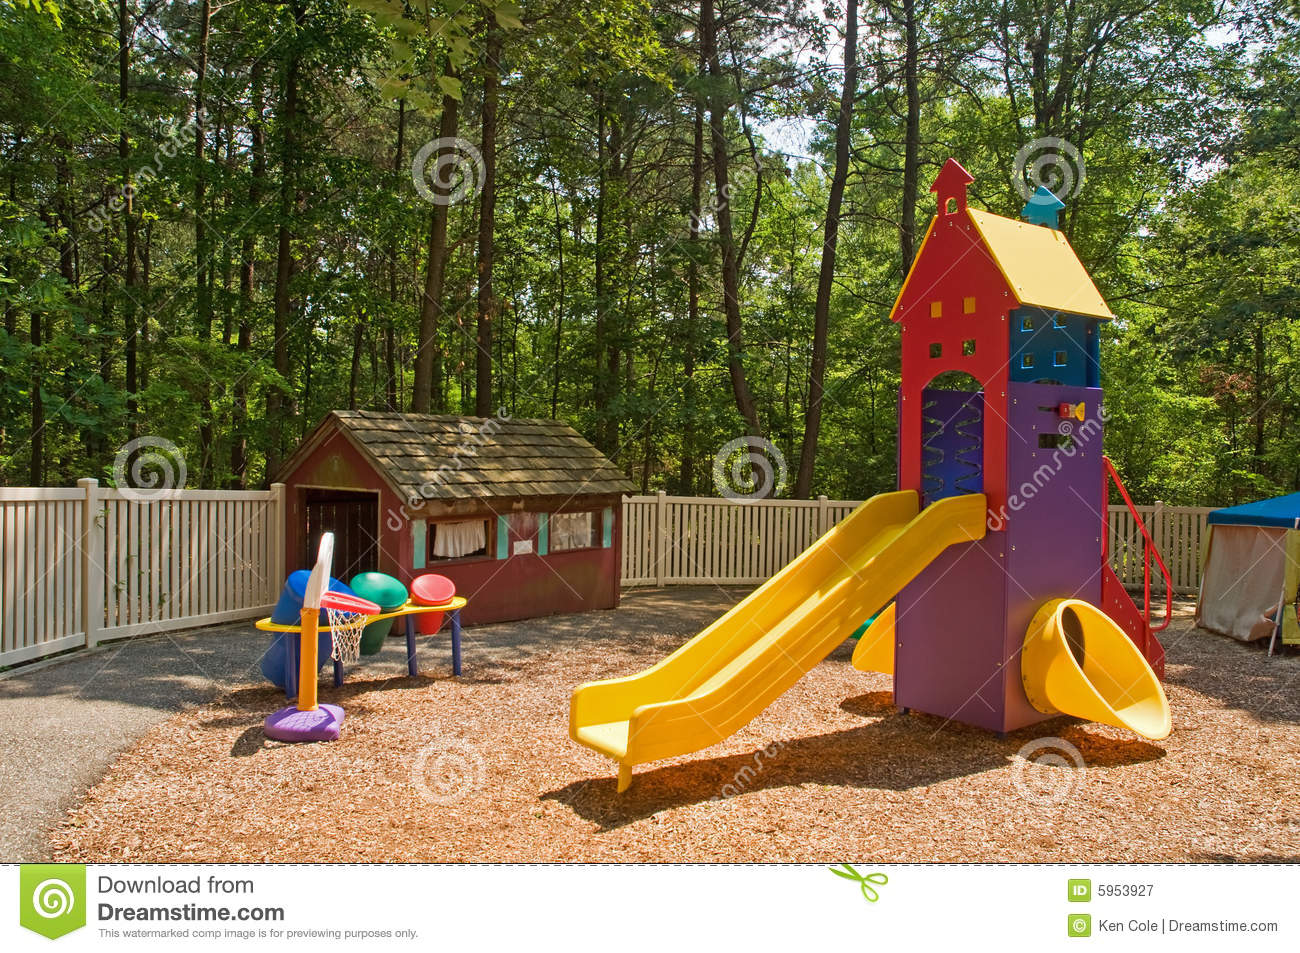 Daycare playground equipment